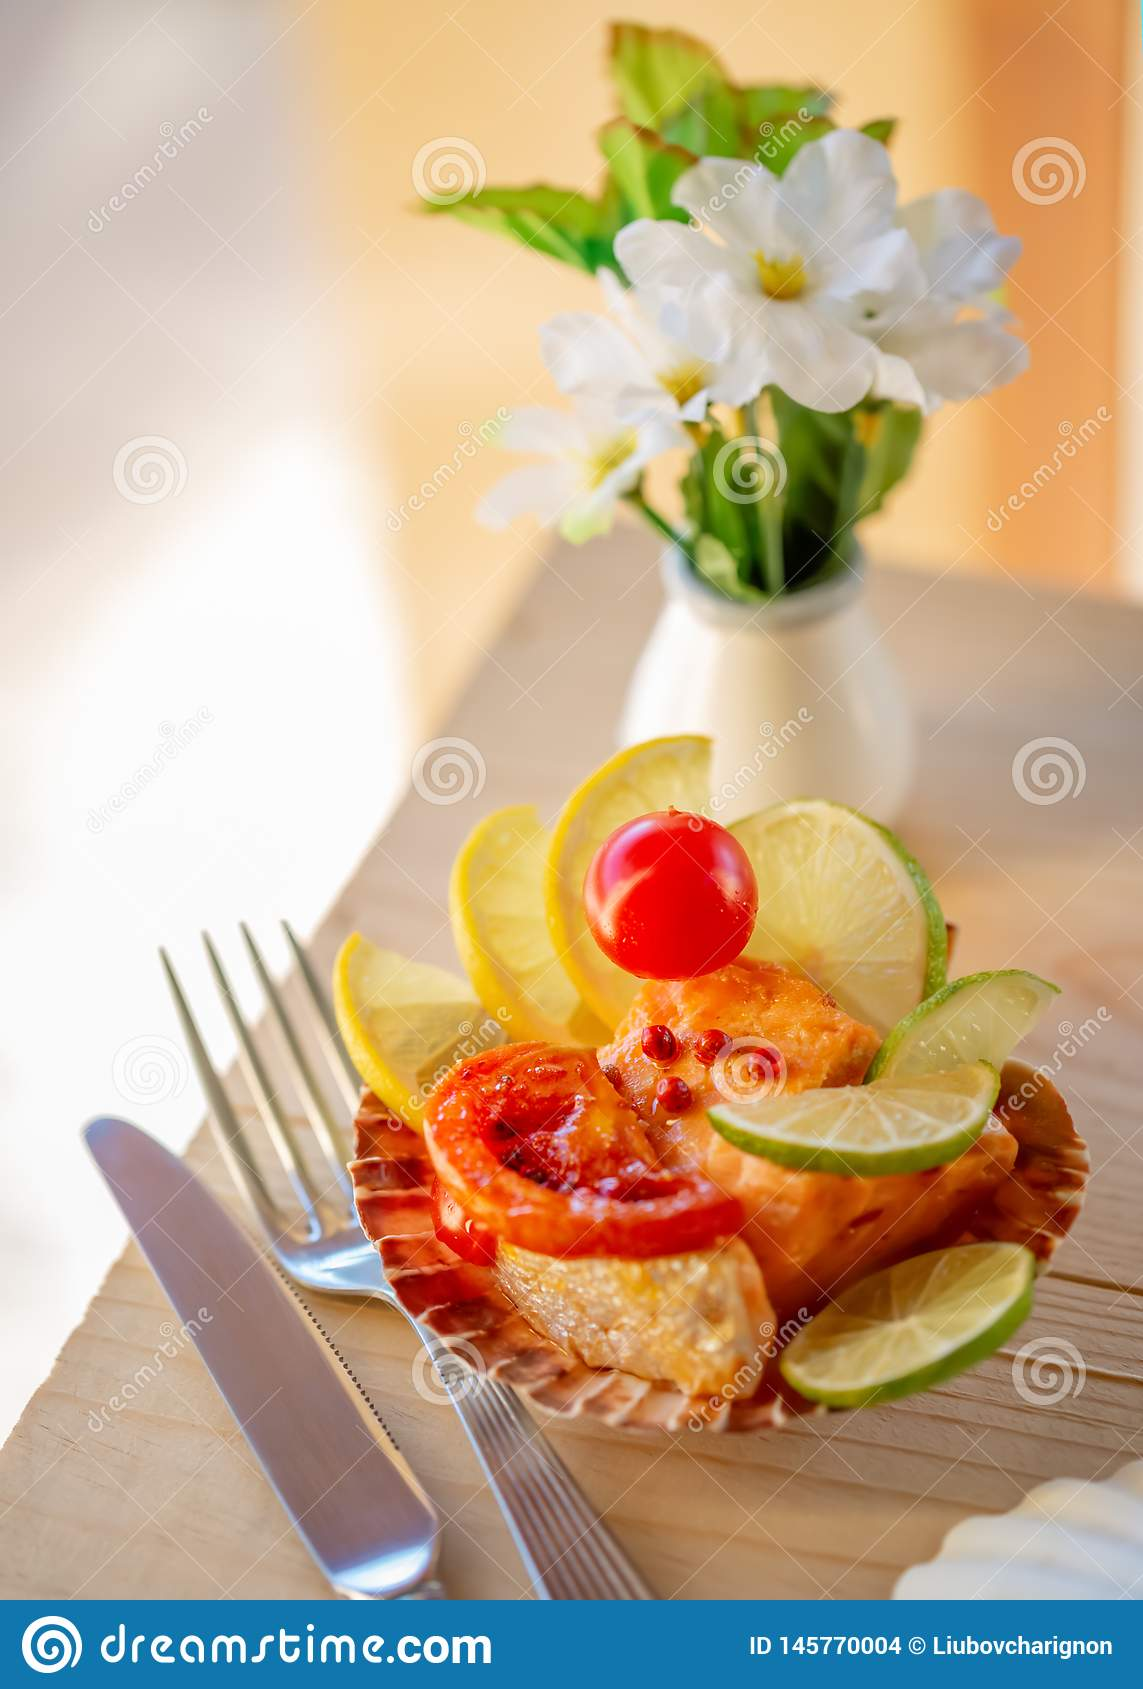 Appetizer on a wooden surface. Fish a salmon with slices of a lemon or lime and tomato on a plate.